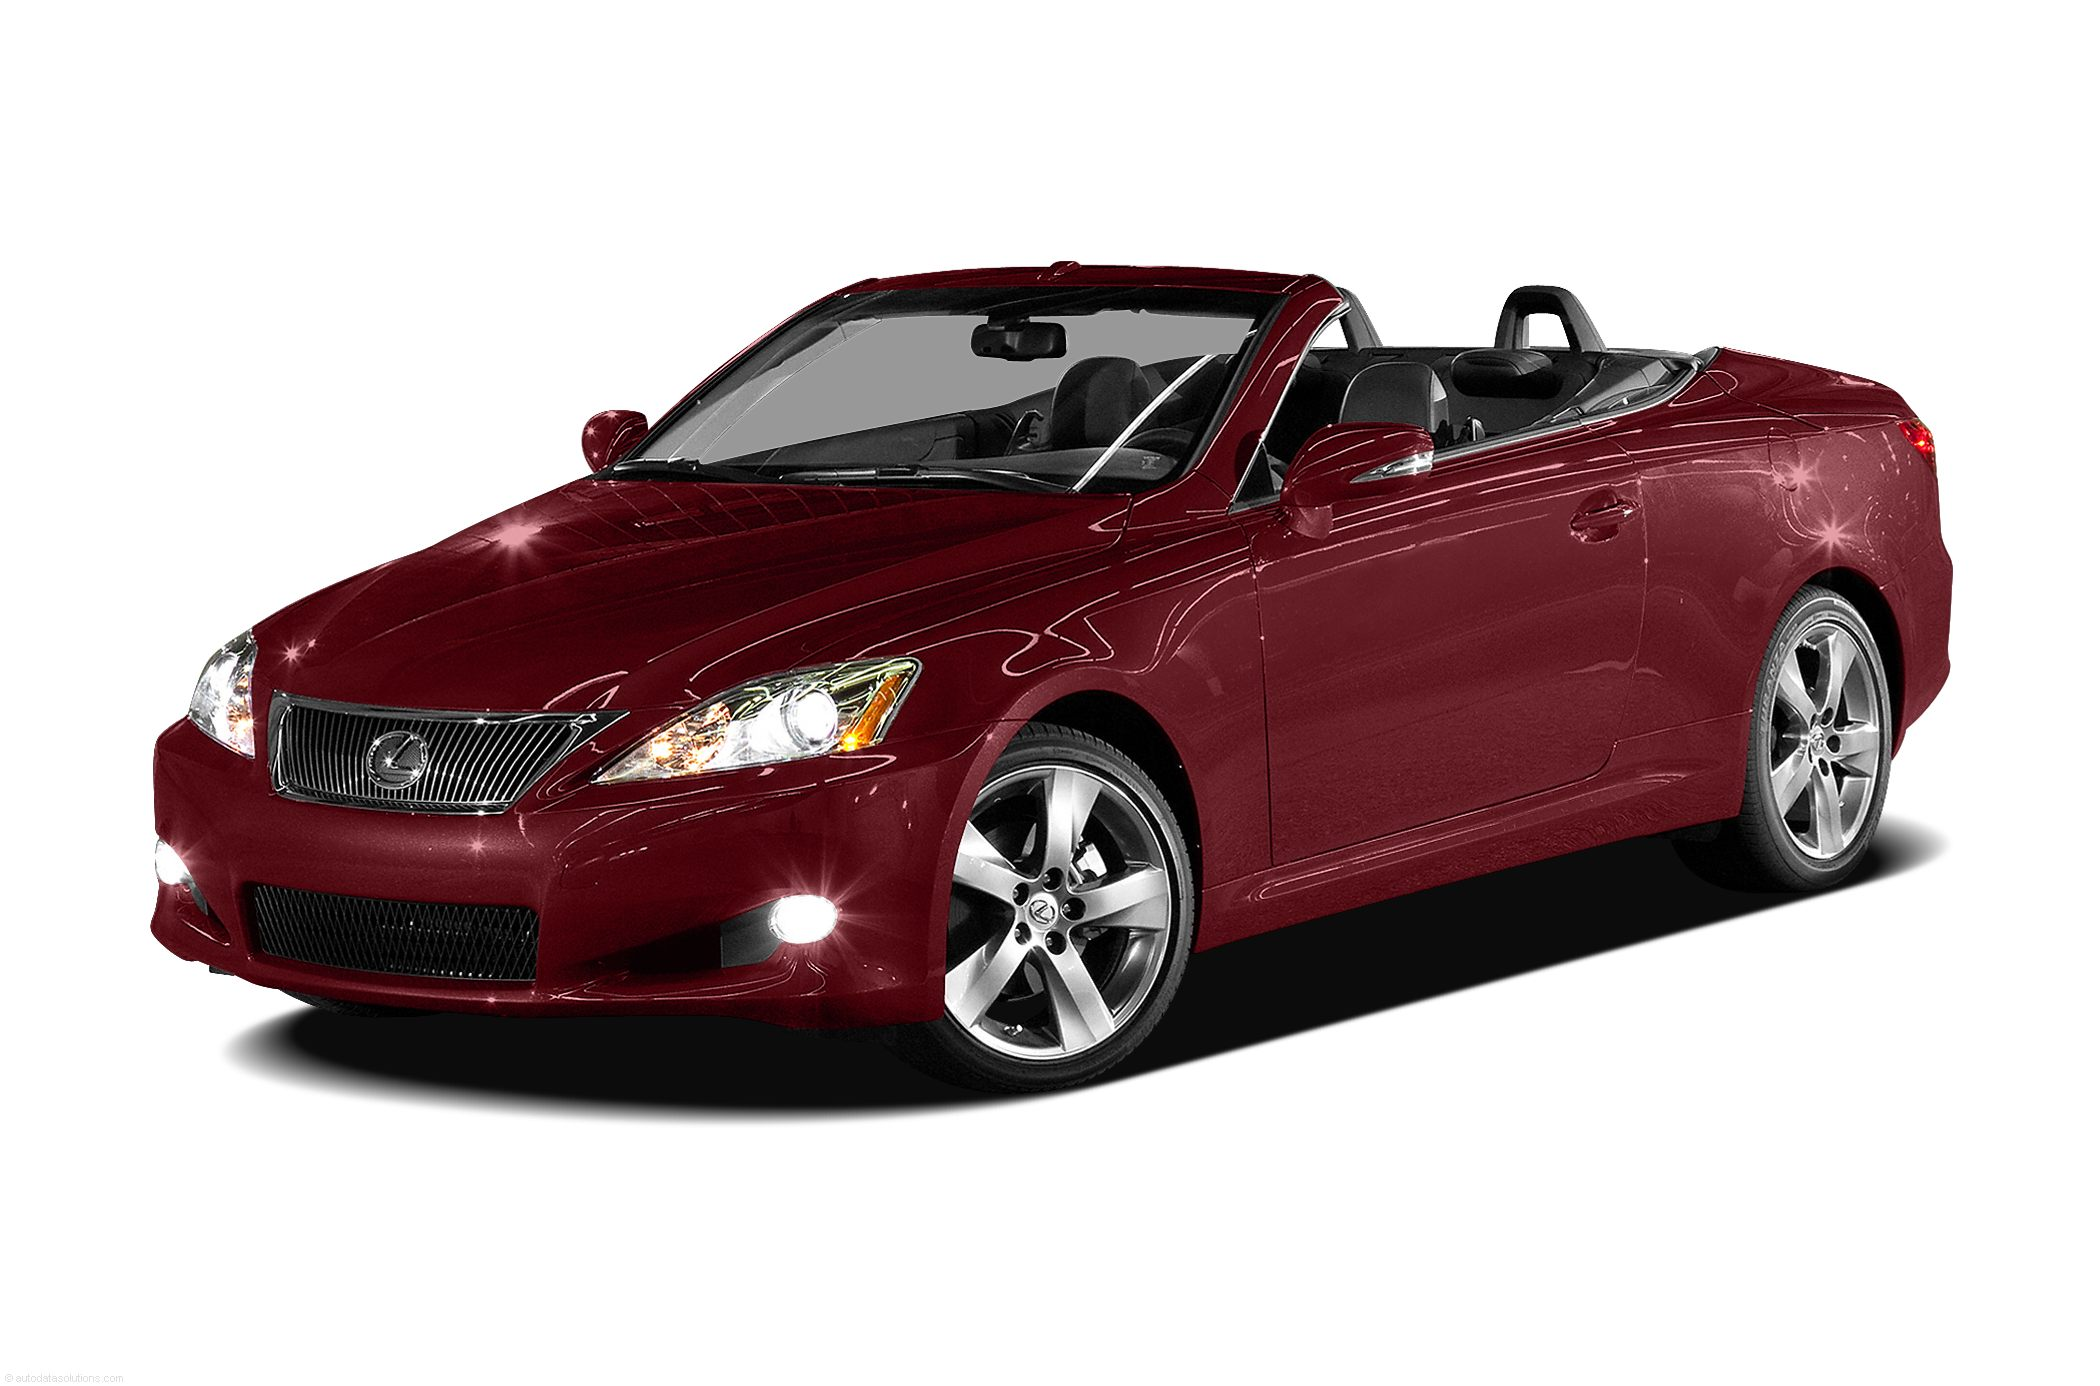 is convertible lexus angular automobile review news front luxury c